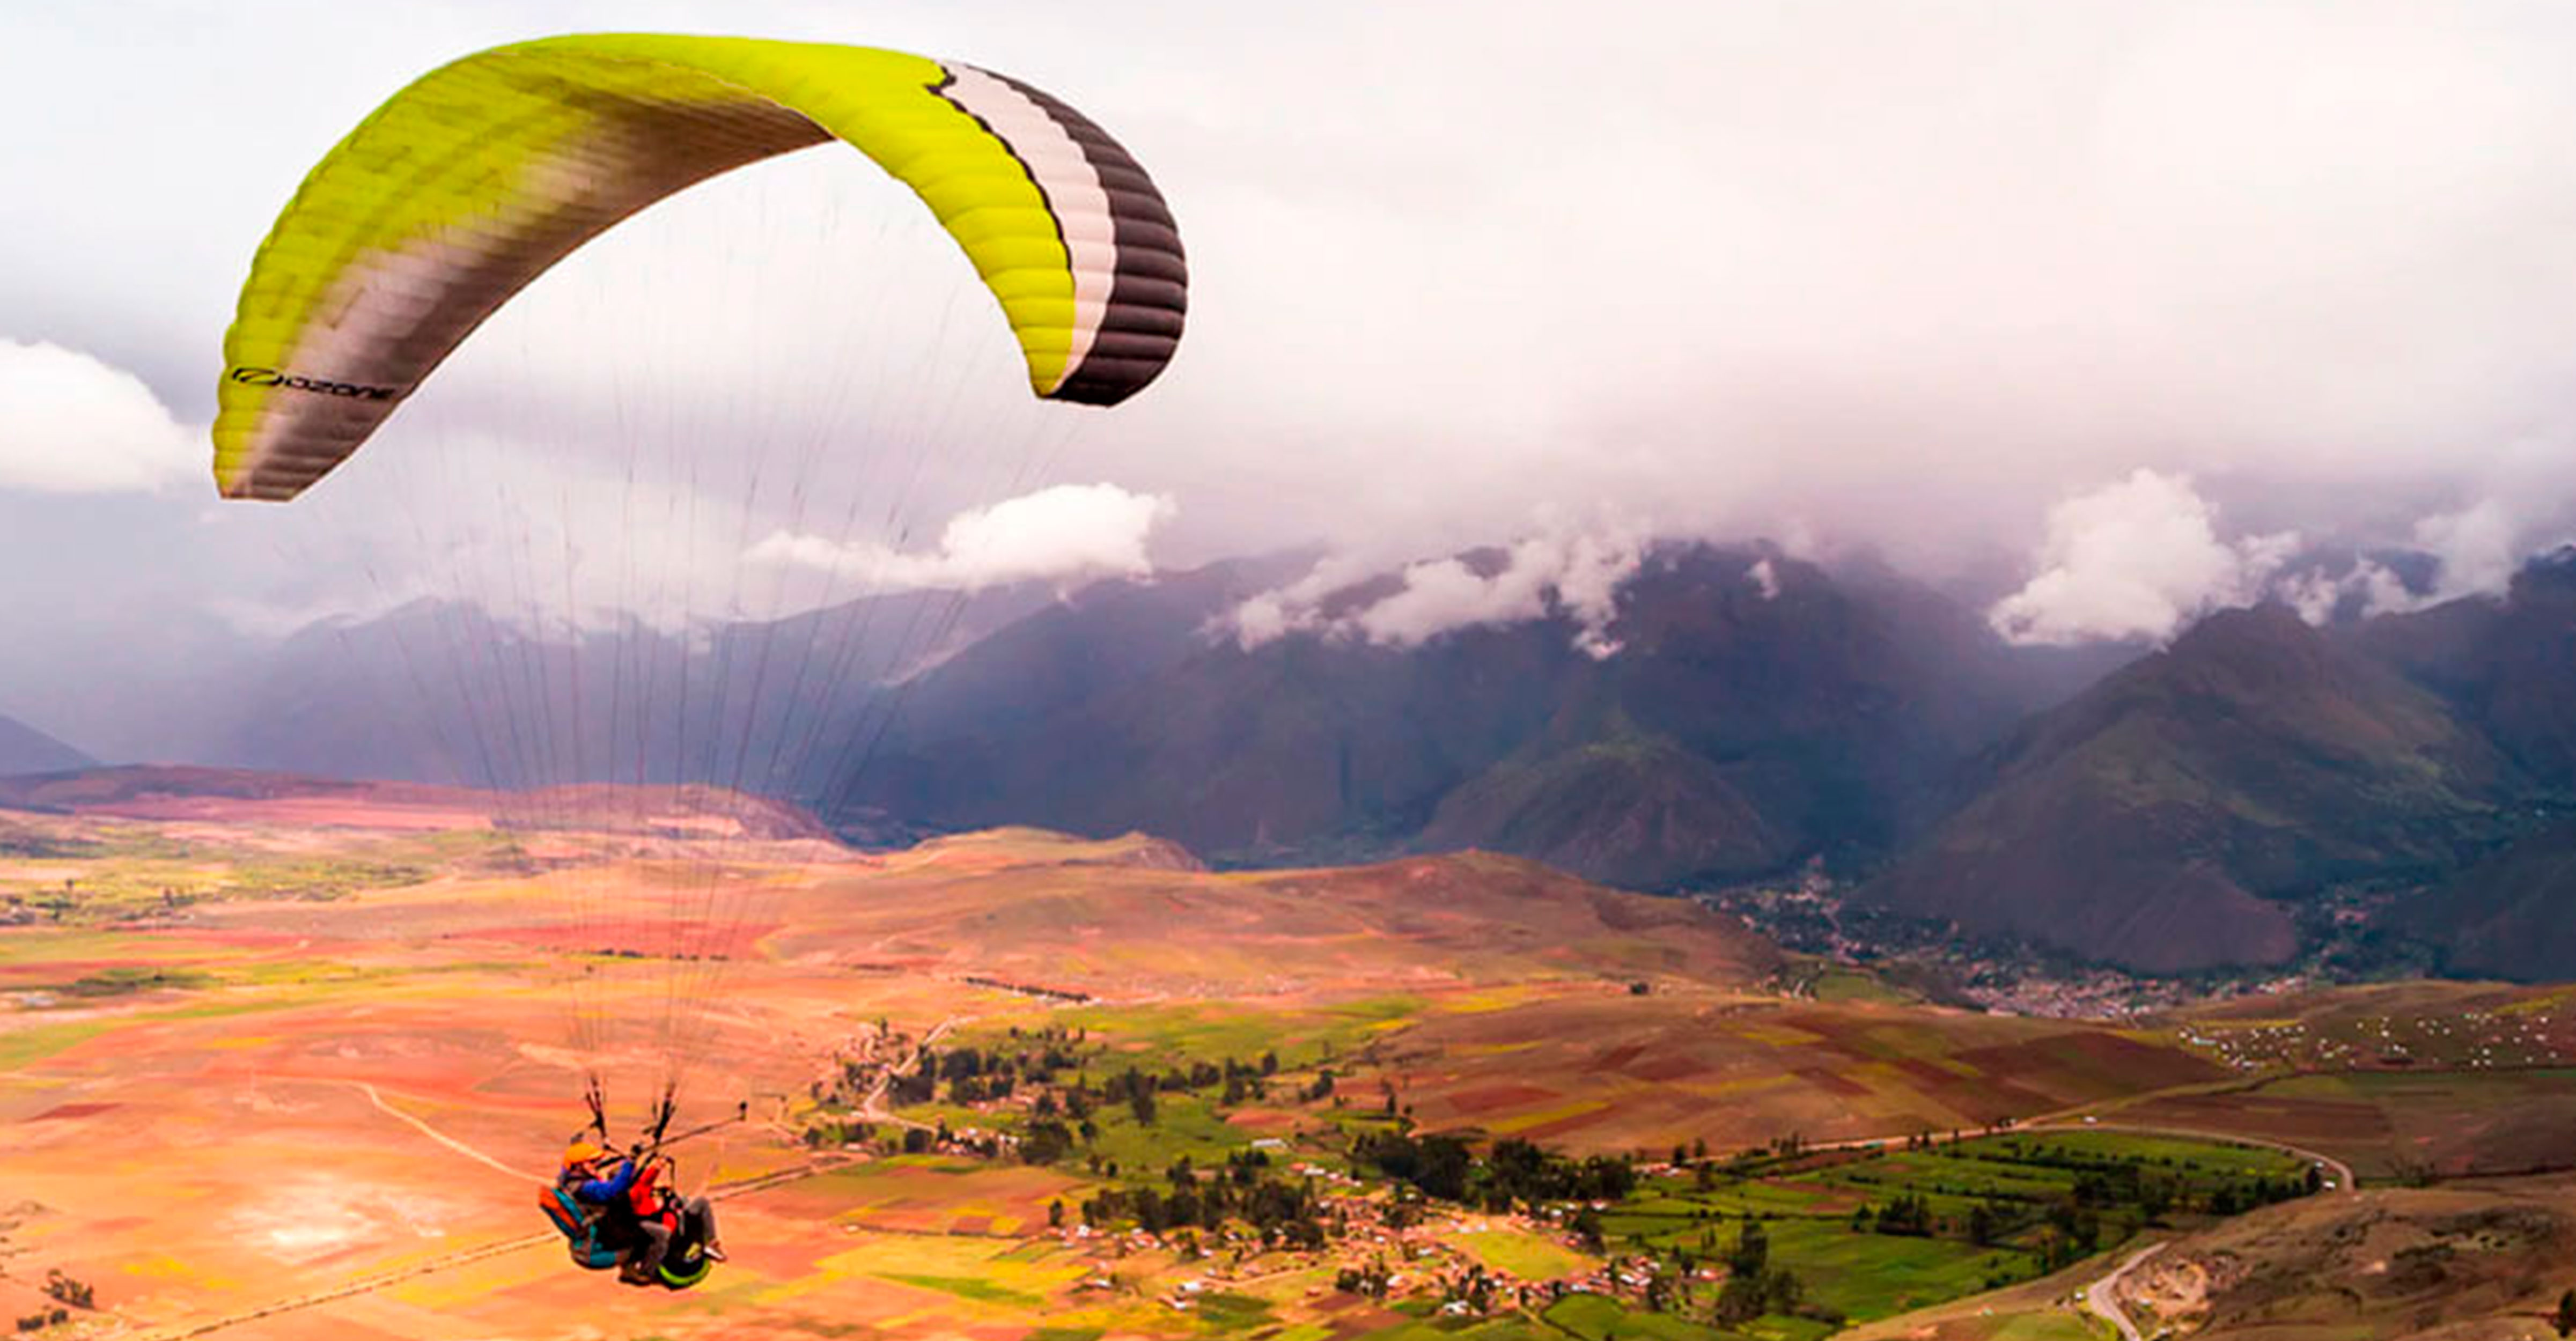 Paragliding in Chinchero